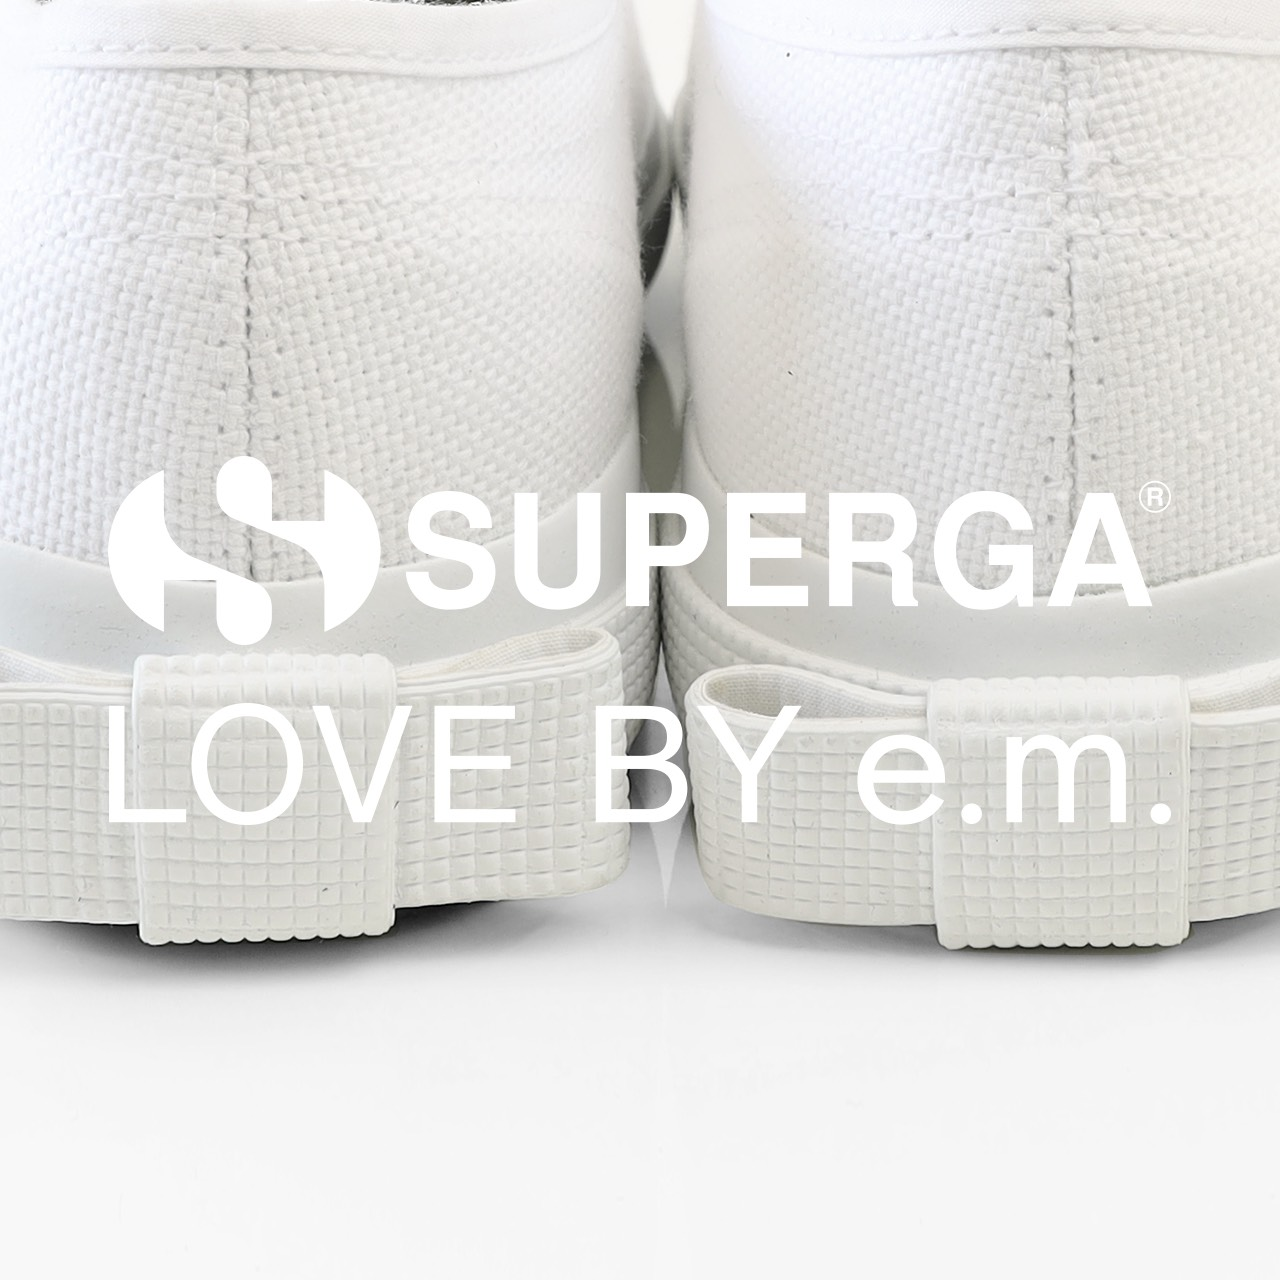 SUPERGA_LOVE BY e.m._別注スニーカー